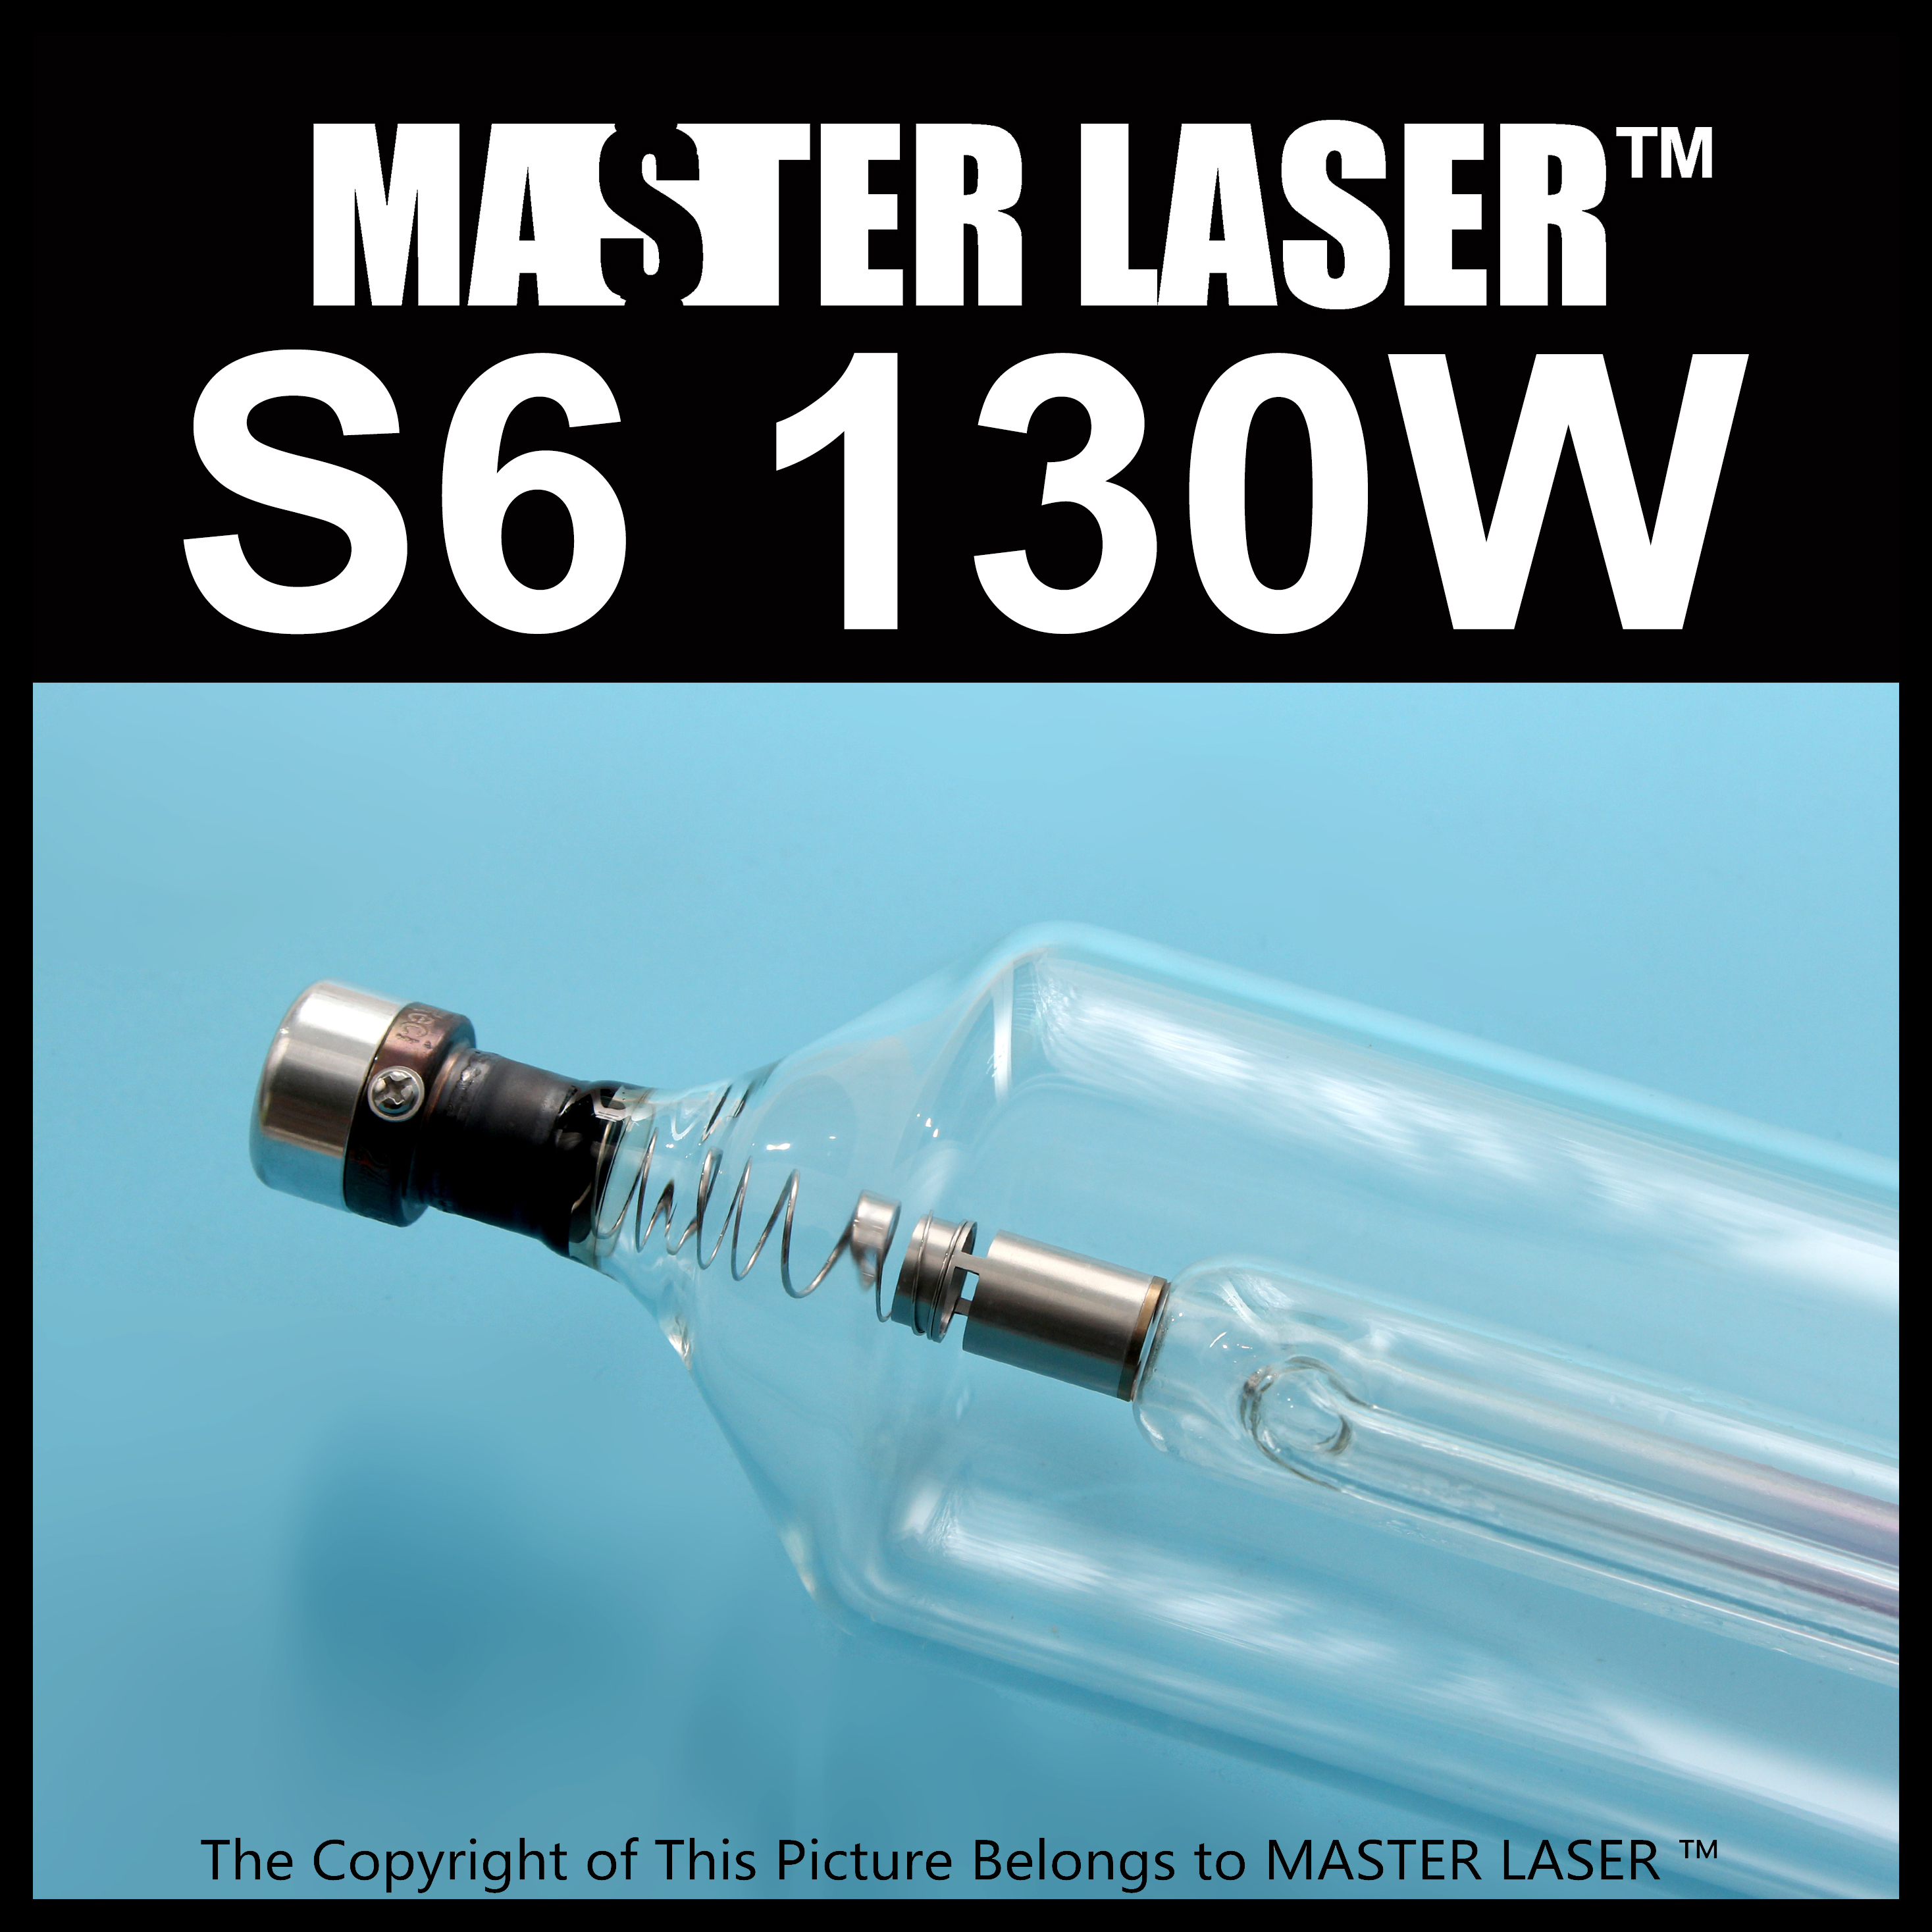 High Power Reci  Laser Tube S6 130W CO2 Laser Machine for Engraving and Cutting reci w4 laser tube co2 100w upgrade z4 glass tube for laser engraving cutting machine